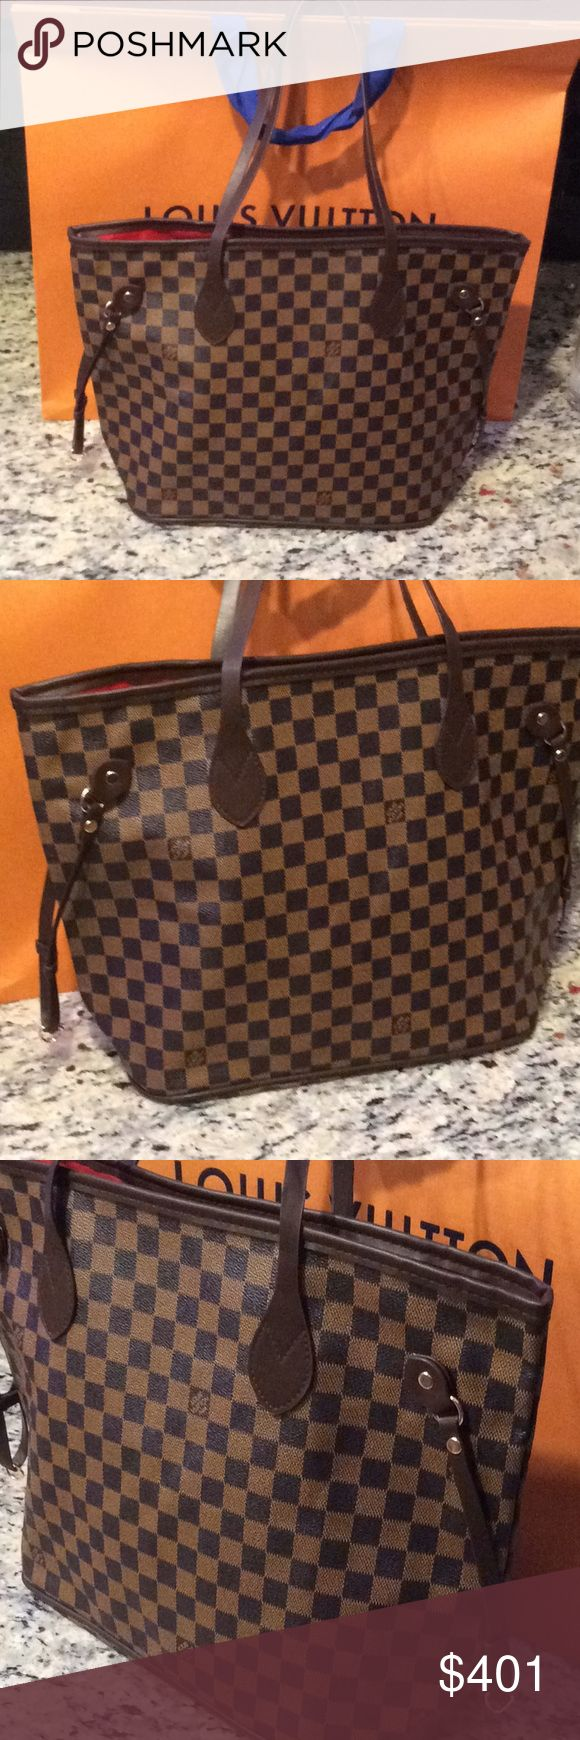 new Louis Vuitton size mm damier neverfull Just make an offer All reasonable offers will be considered I will go much lower than the listed  This is a brand new Louis Vuitton size mm damier neverfull  this is a good quality INSPIRED or NOT AUTH piece i think bc i can't find a date stamp in it so I will sell this piece at a fraction of the cost of a real. The shopping bag in the background is not sold with this purse Louis Vuitton Bags Totes